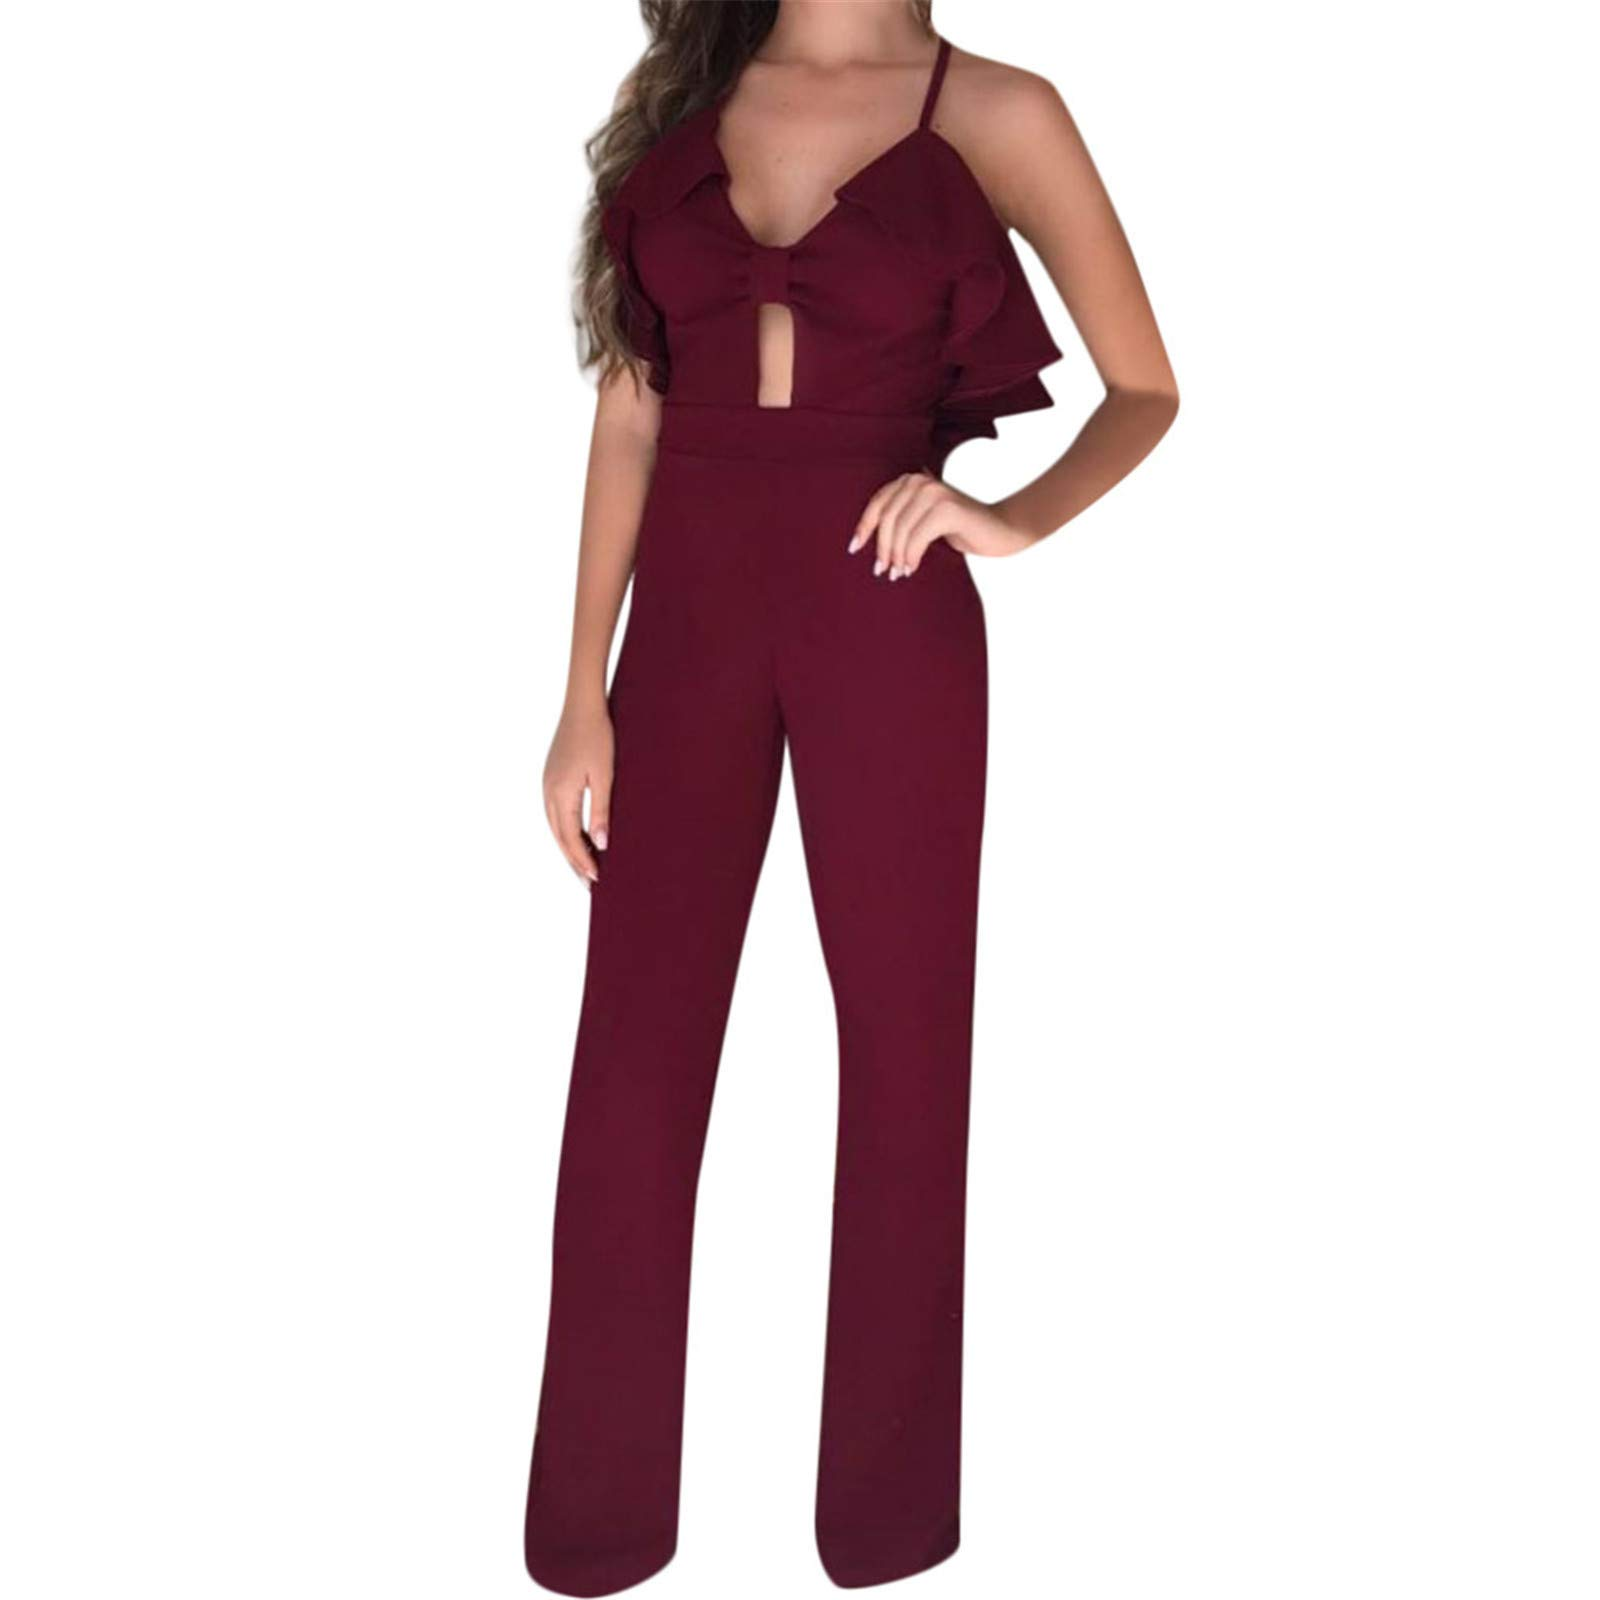 Thenxin Lady's Cocktail Party High Waist Jumpsuit Cami Straps Ruffle Trim Cut Out Backless Romper(Red,S)